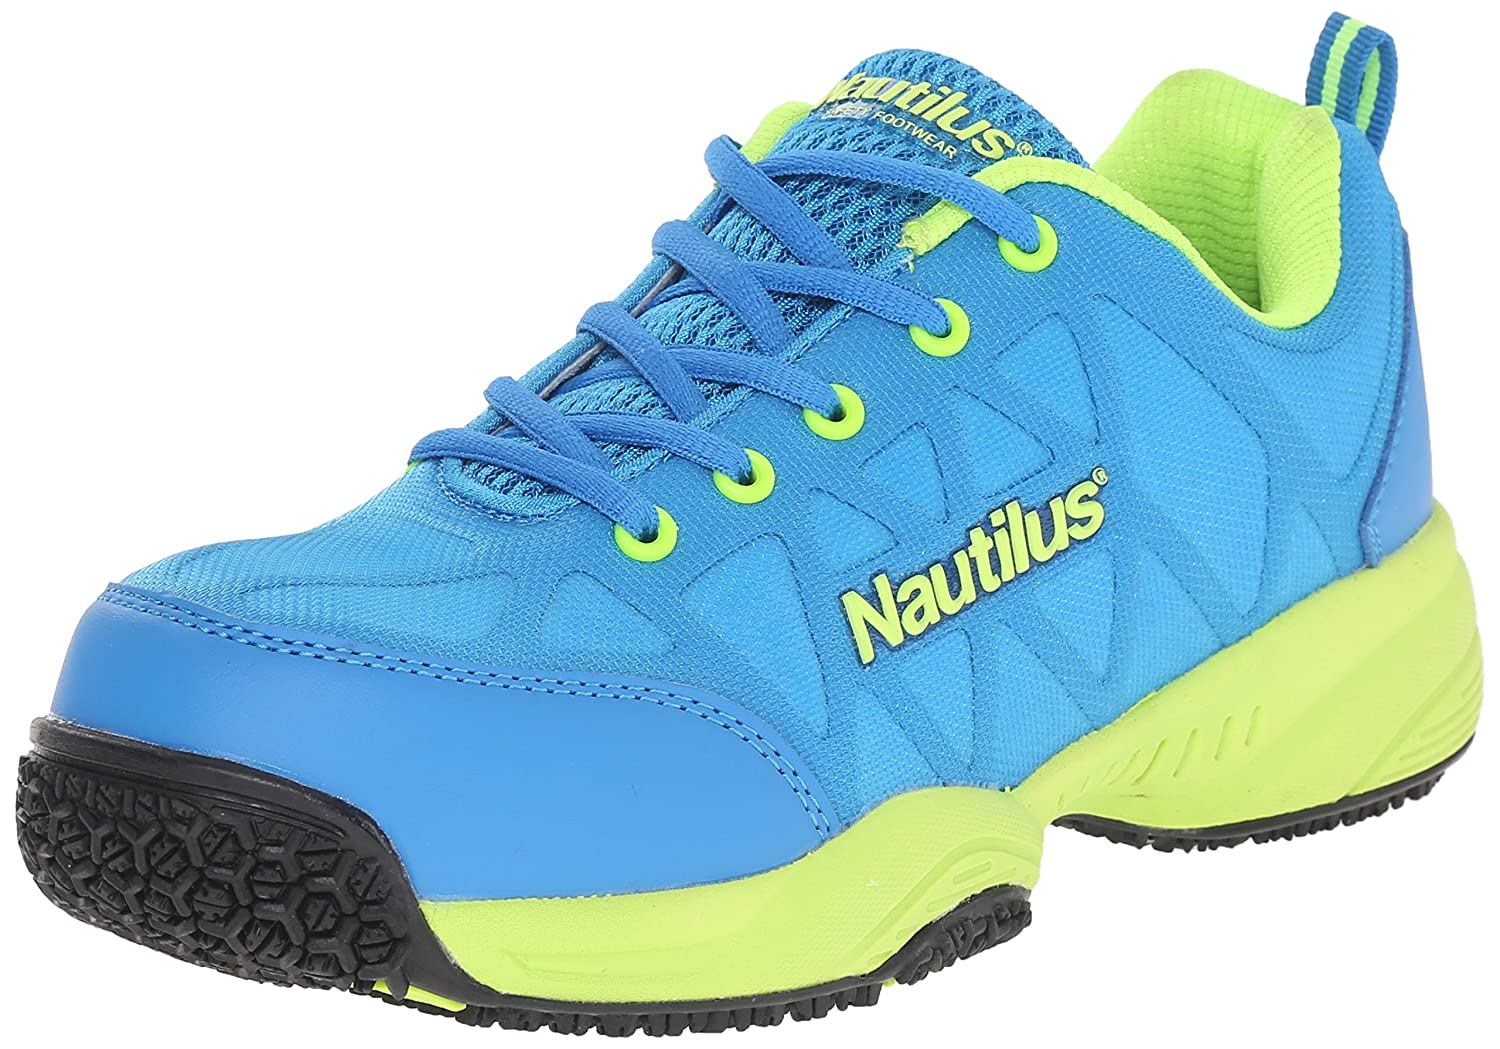 Nautilus Safety Footwear レディース B005BGXC44 6 C/D US|ブルー ブルー 6 C/D US